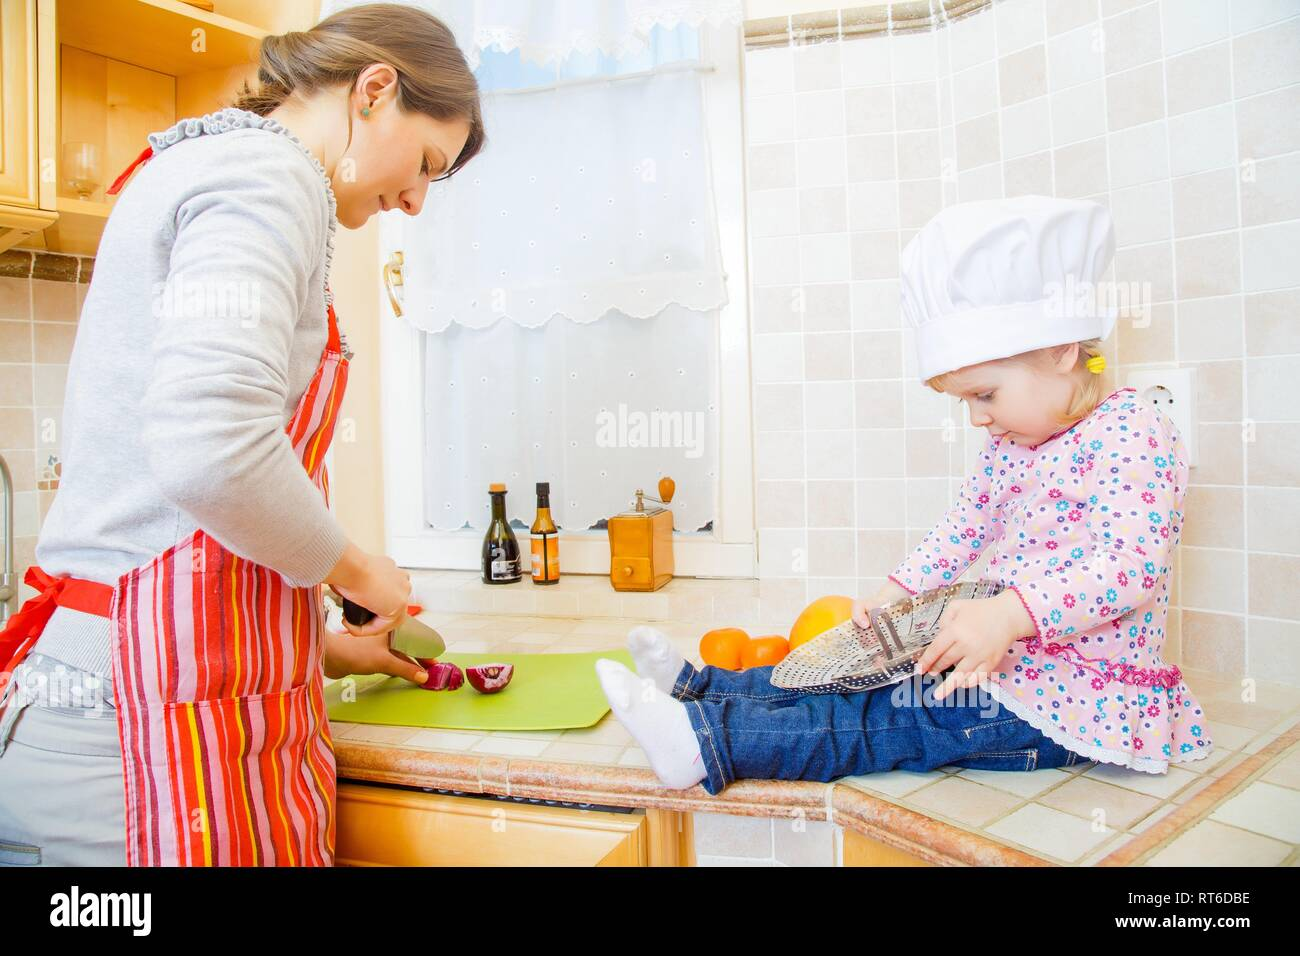 Little girl and mother cooking together in the kitchen. - Stock Image